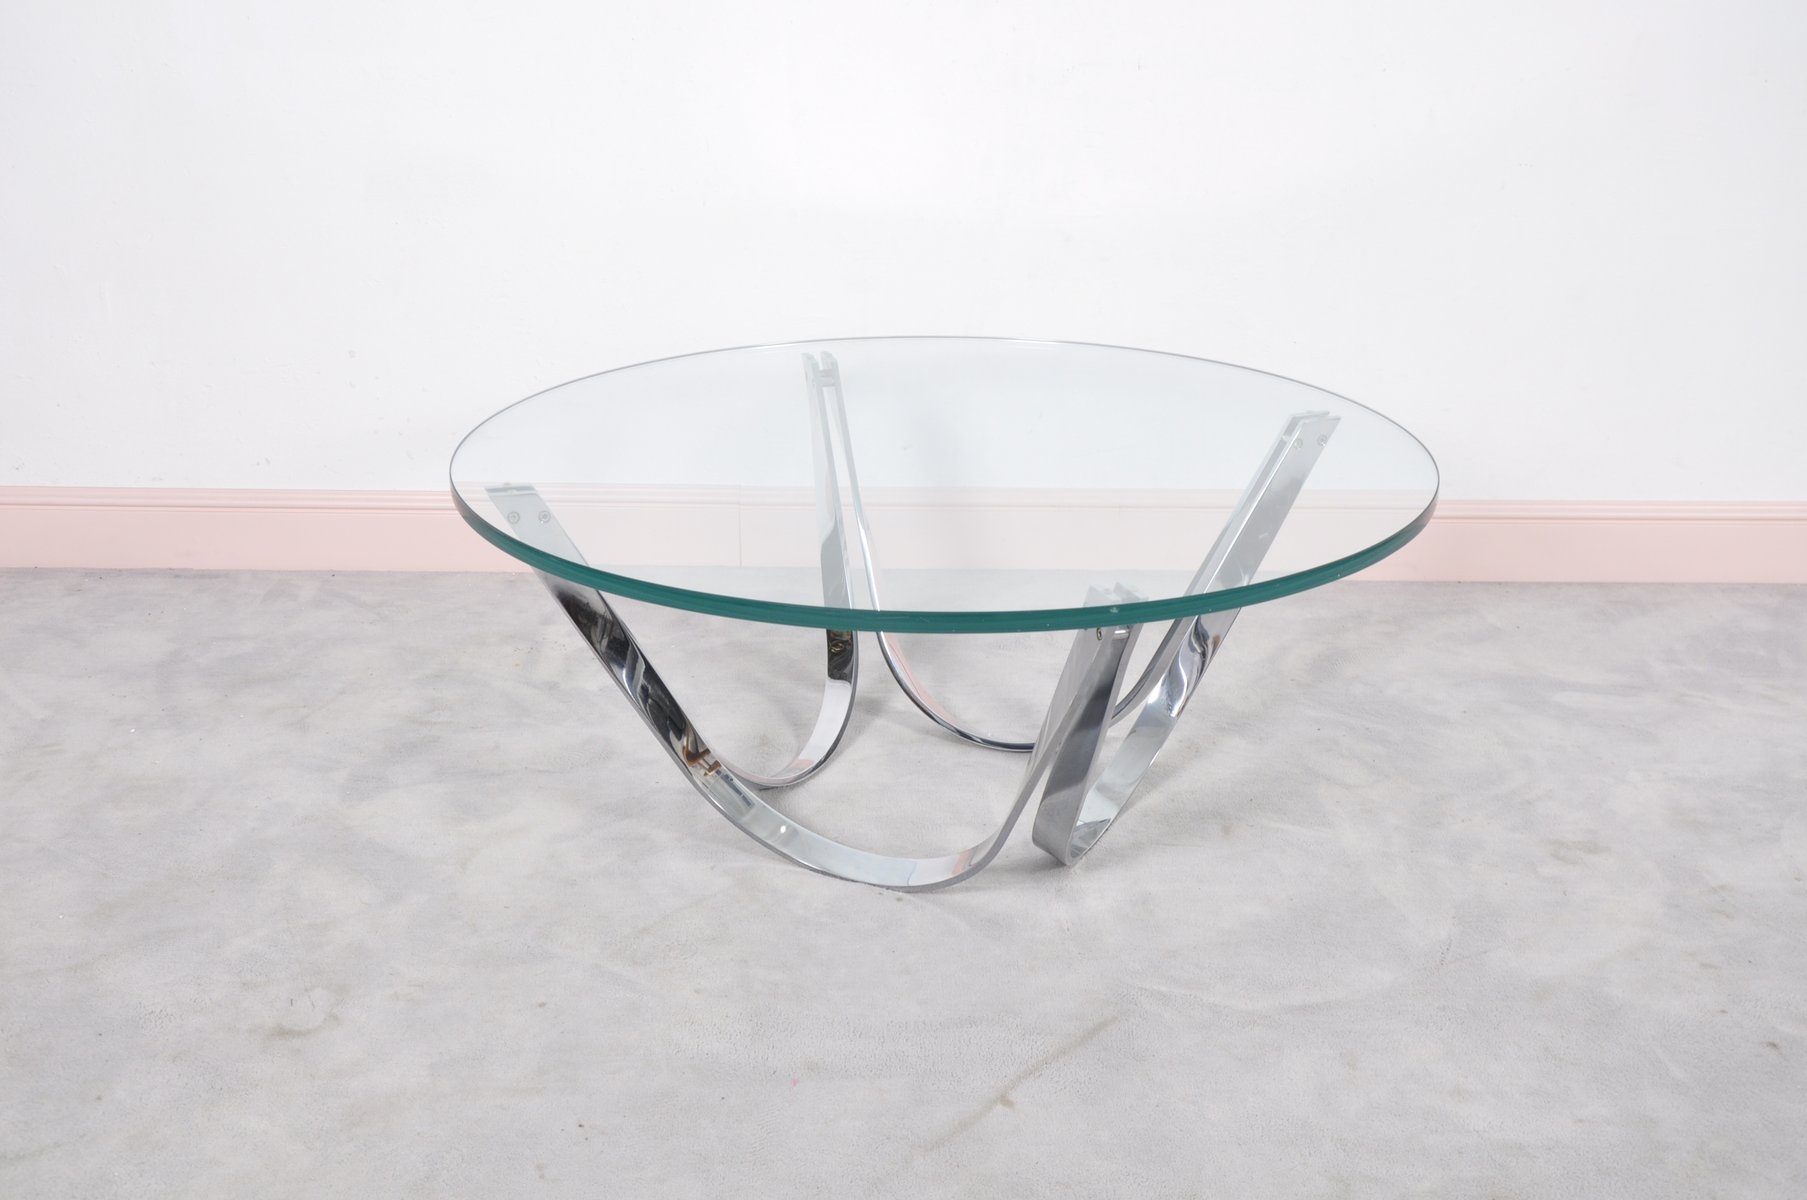 Round glass coffee table by roger sprunger for dunbar 1970s for sale at pamono One piece glass coffee table